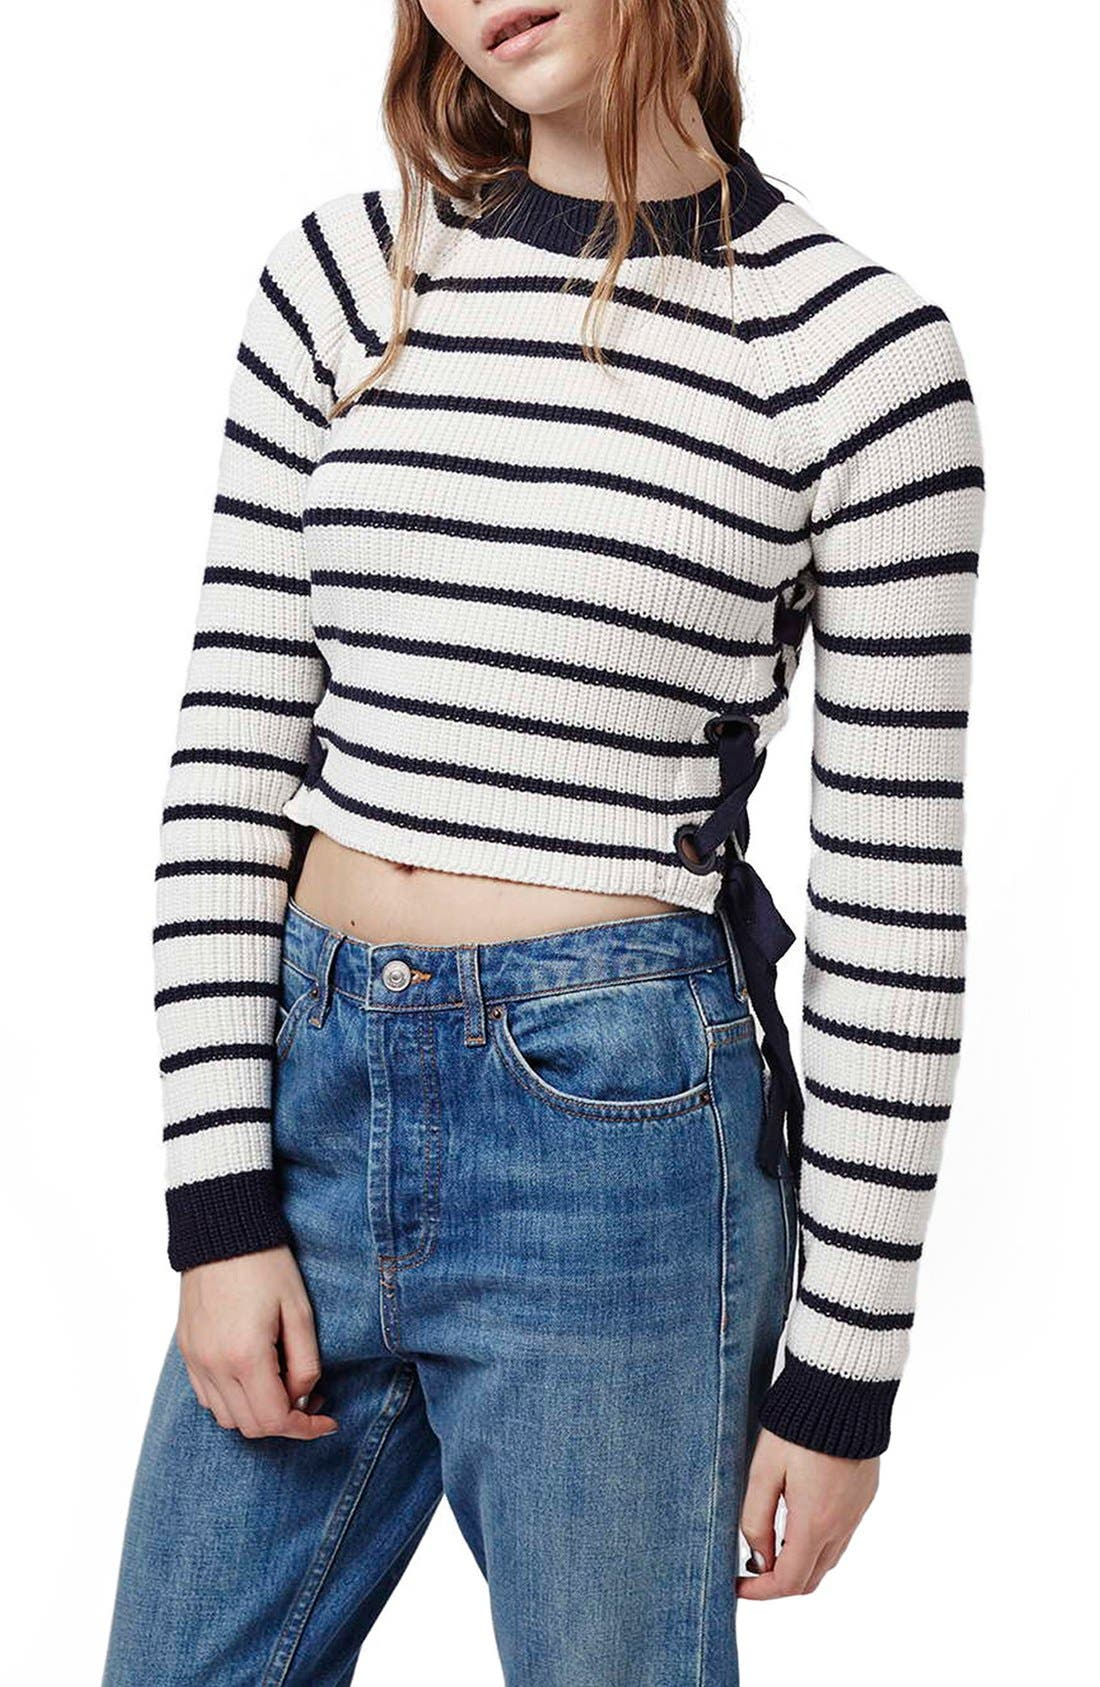 Main Image - Topshop Lace-Up Crop Sweater